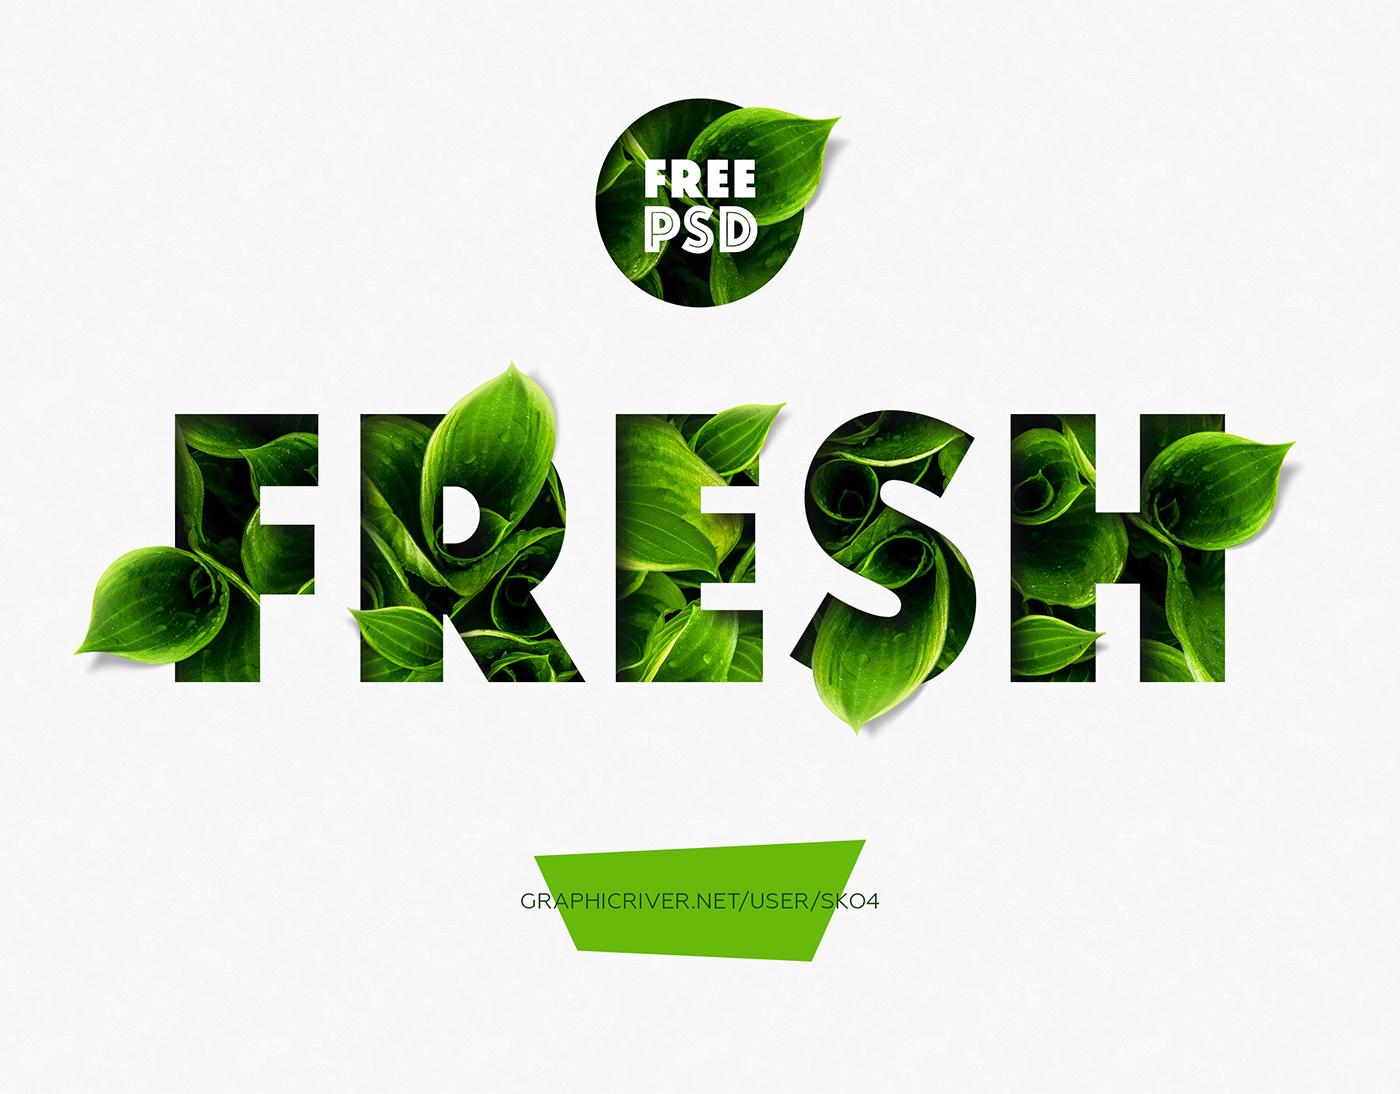 Free Download: Fresh PSD Mockup